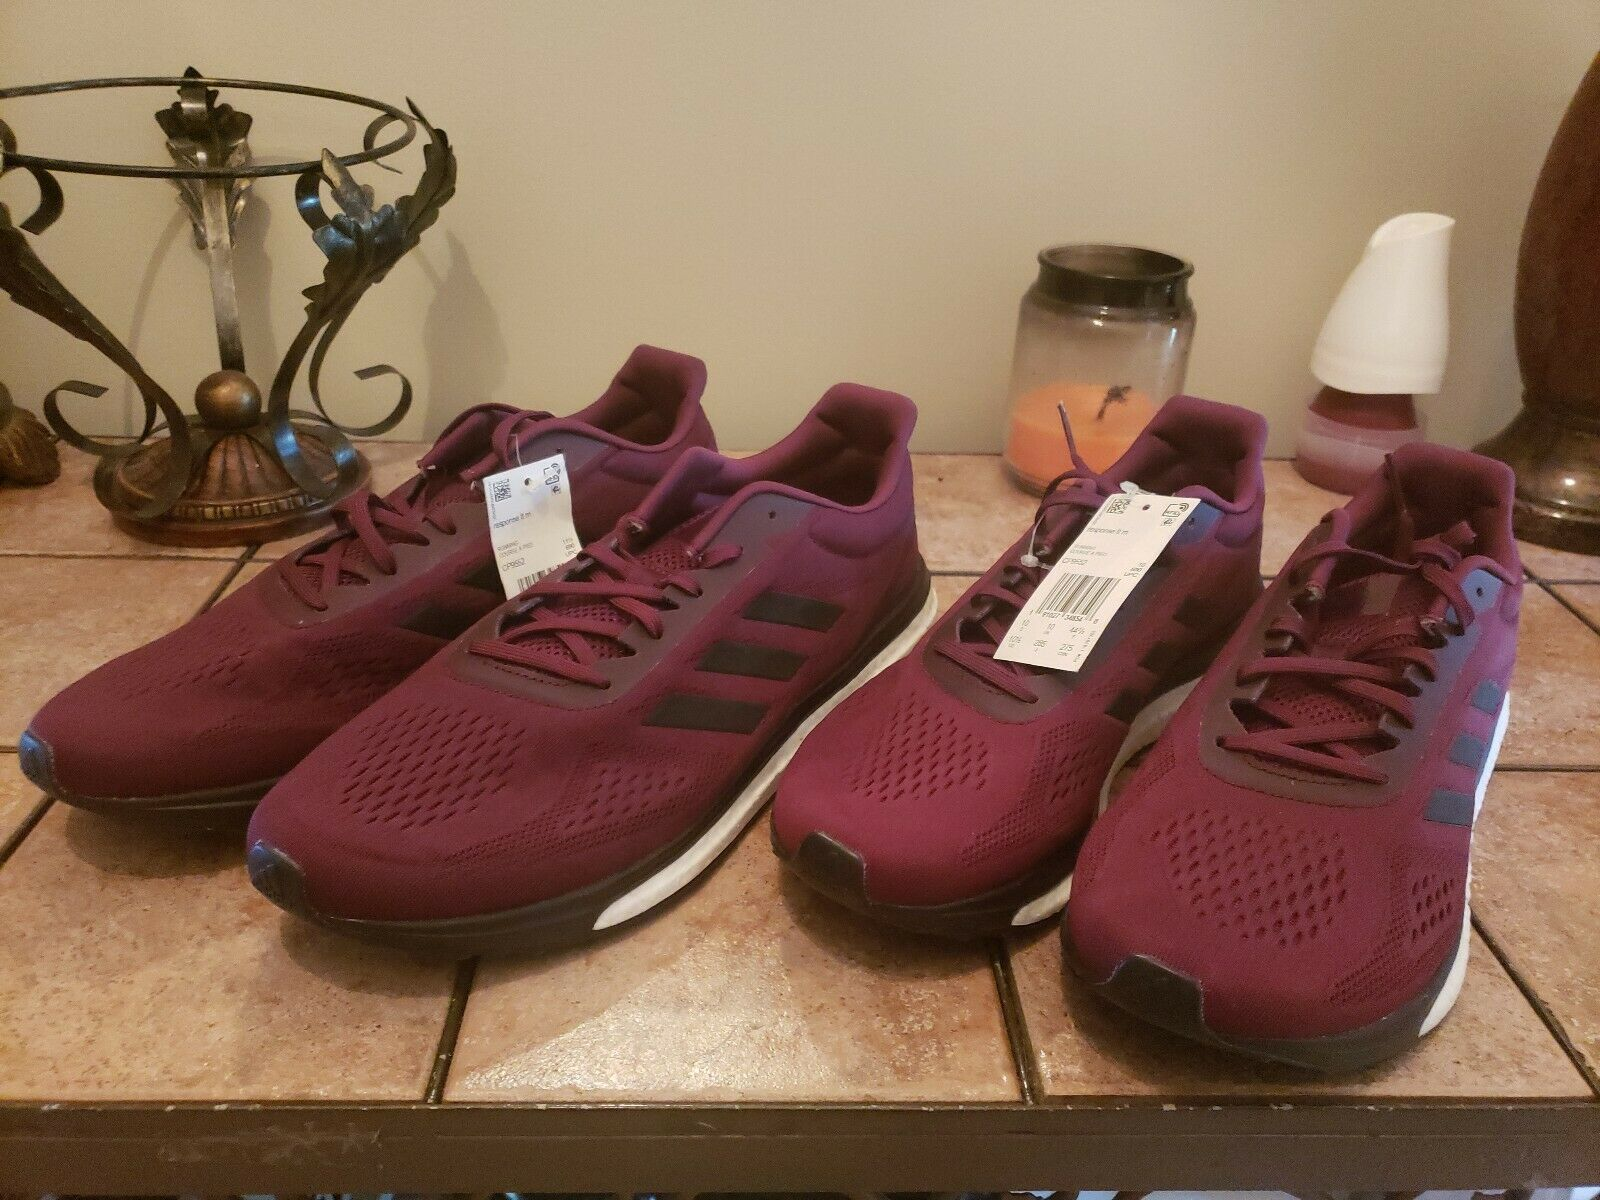 New Adidas Response Limited LT Boost Mens Running shoes. Size 12. Maroon CP9552